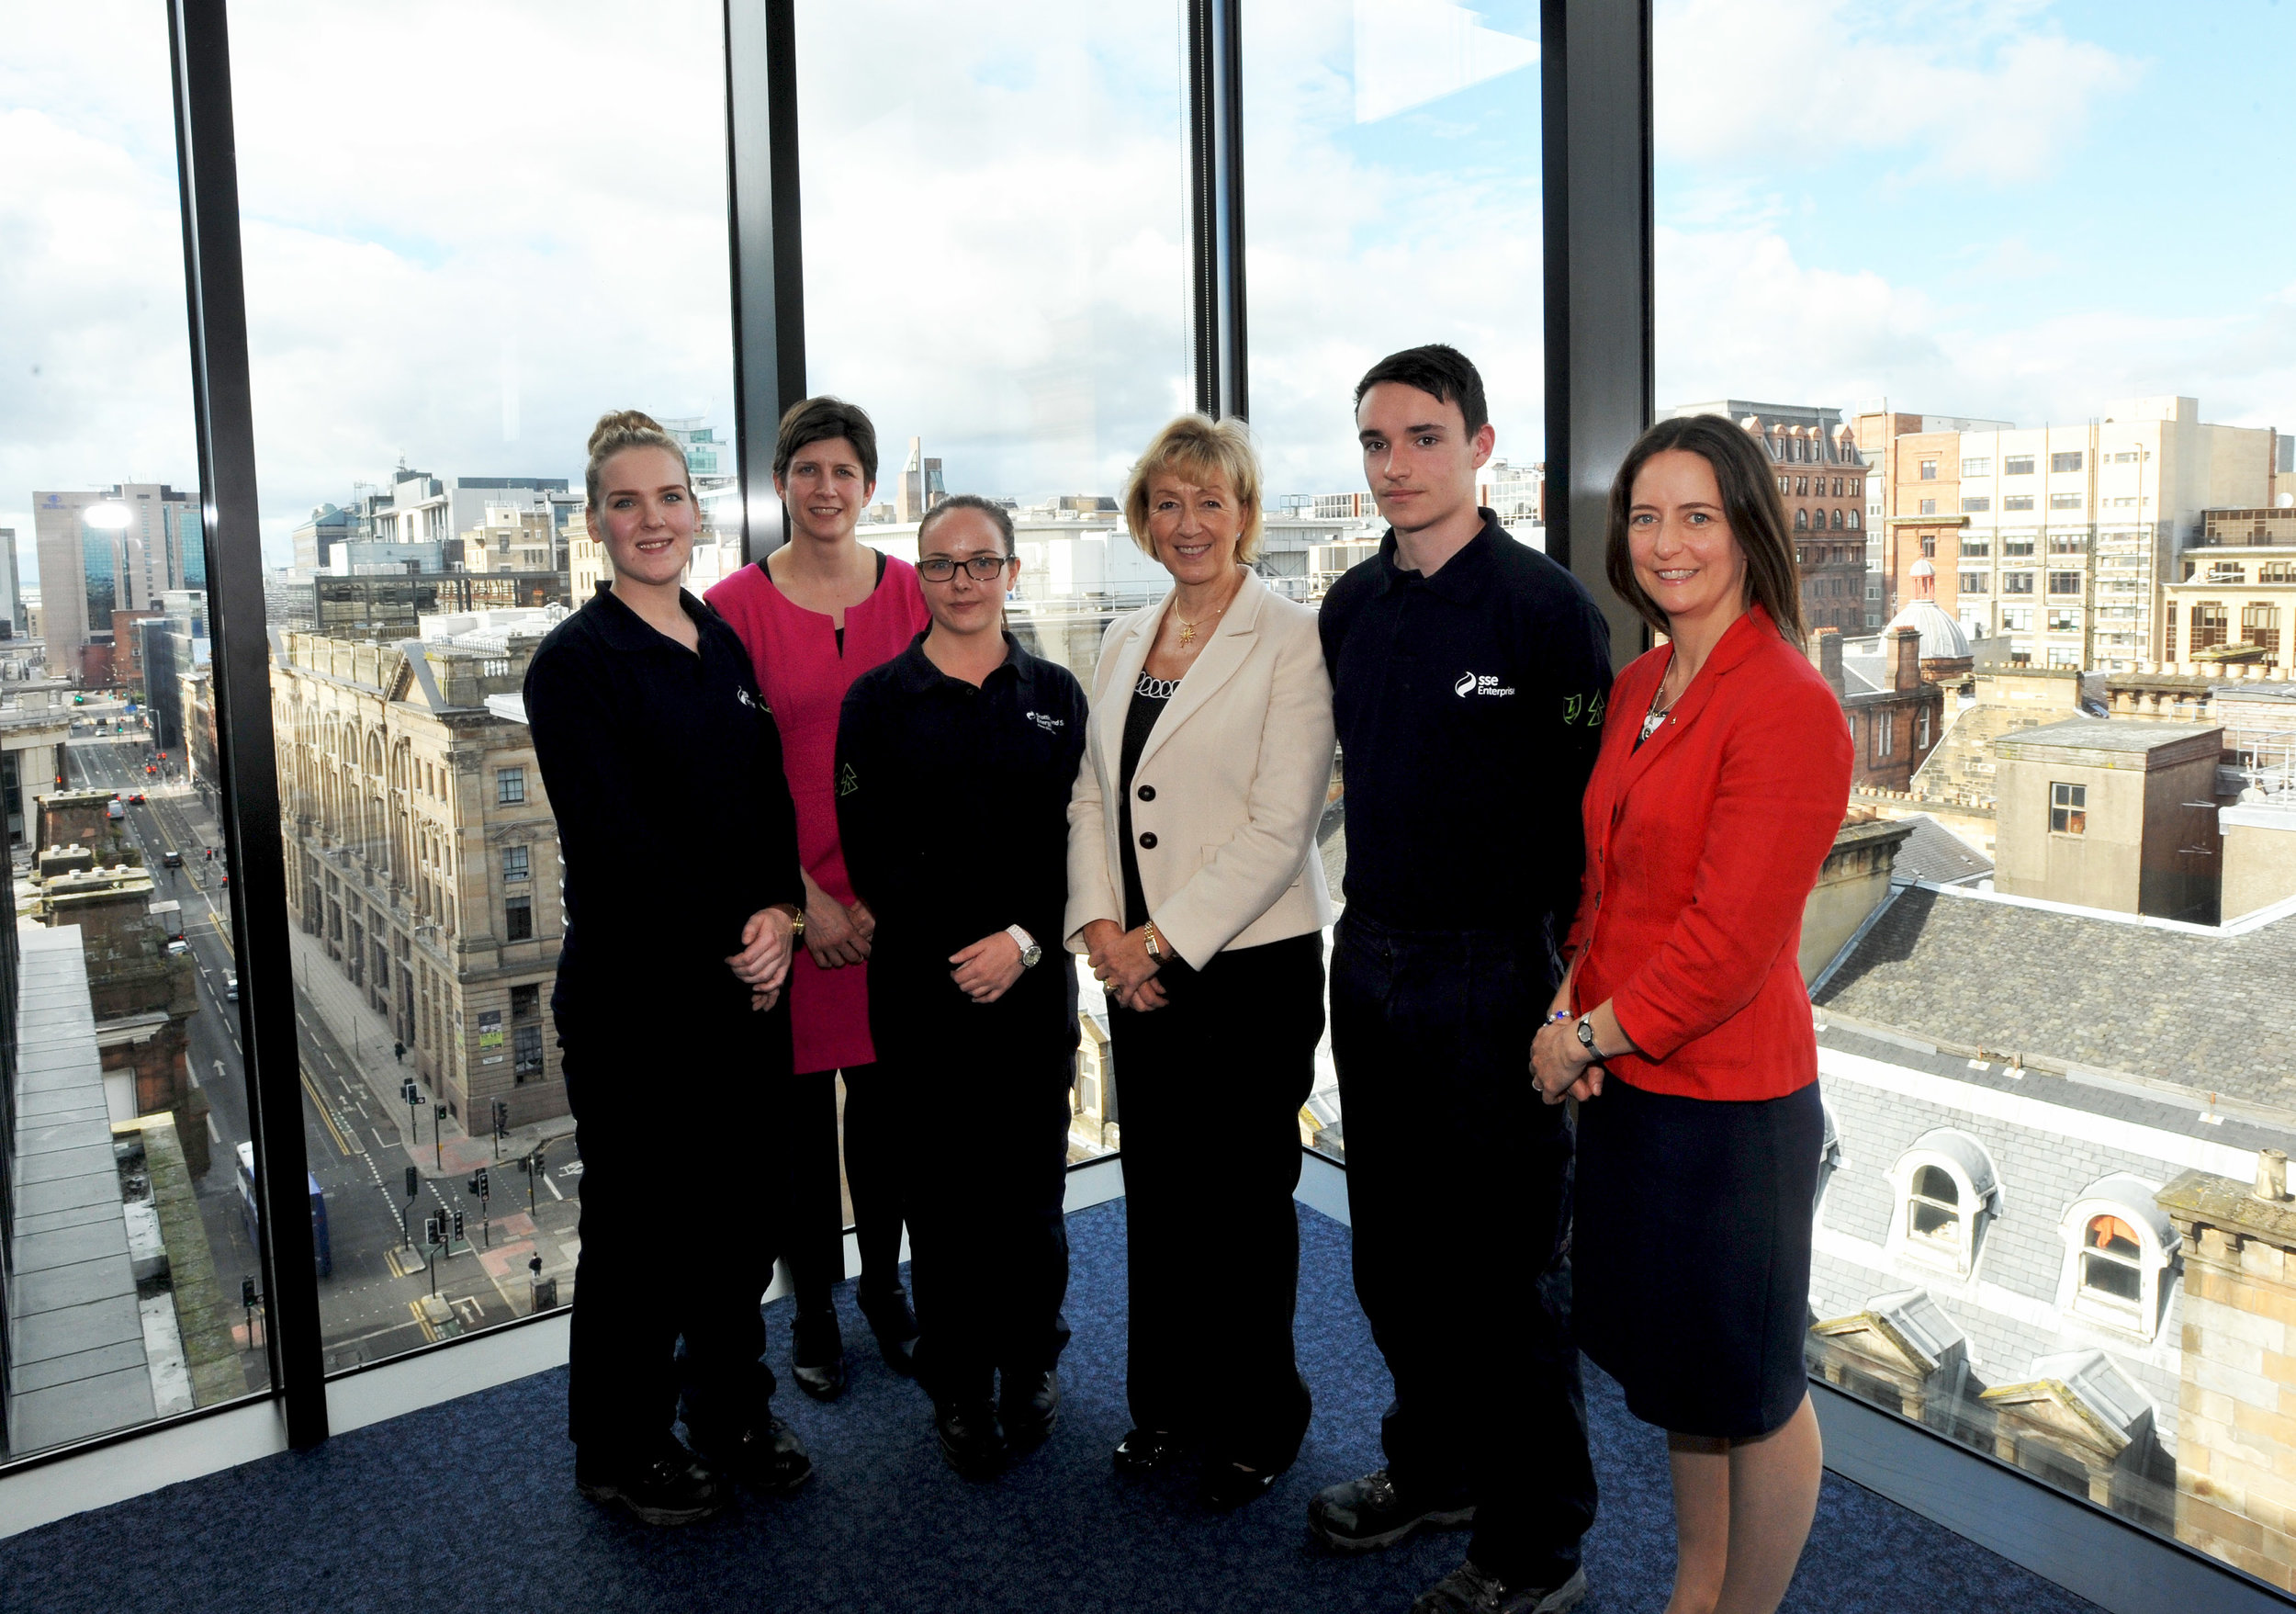 20150921 Leadsom, Alison Thewliss MP and Caroline Monaghan MP with new SSE apprentices Morna Grant, Craig Martin & Megan Dougan [02].jpg